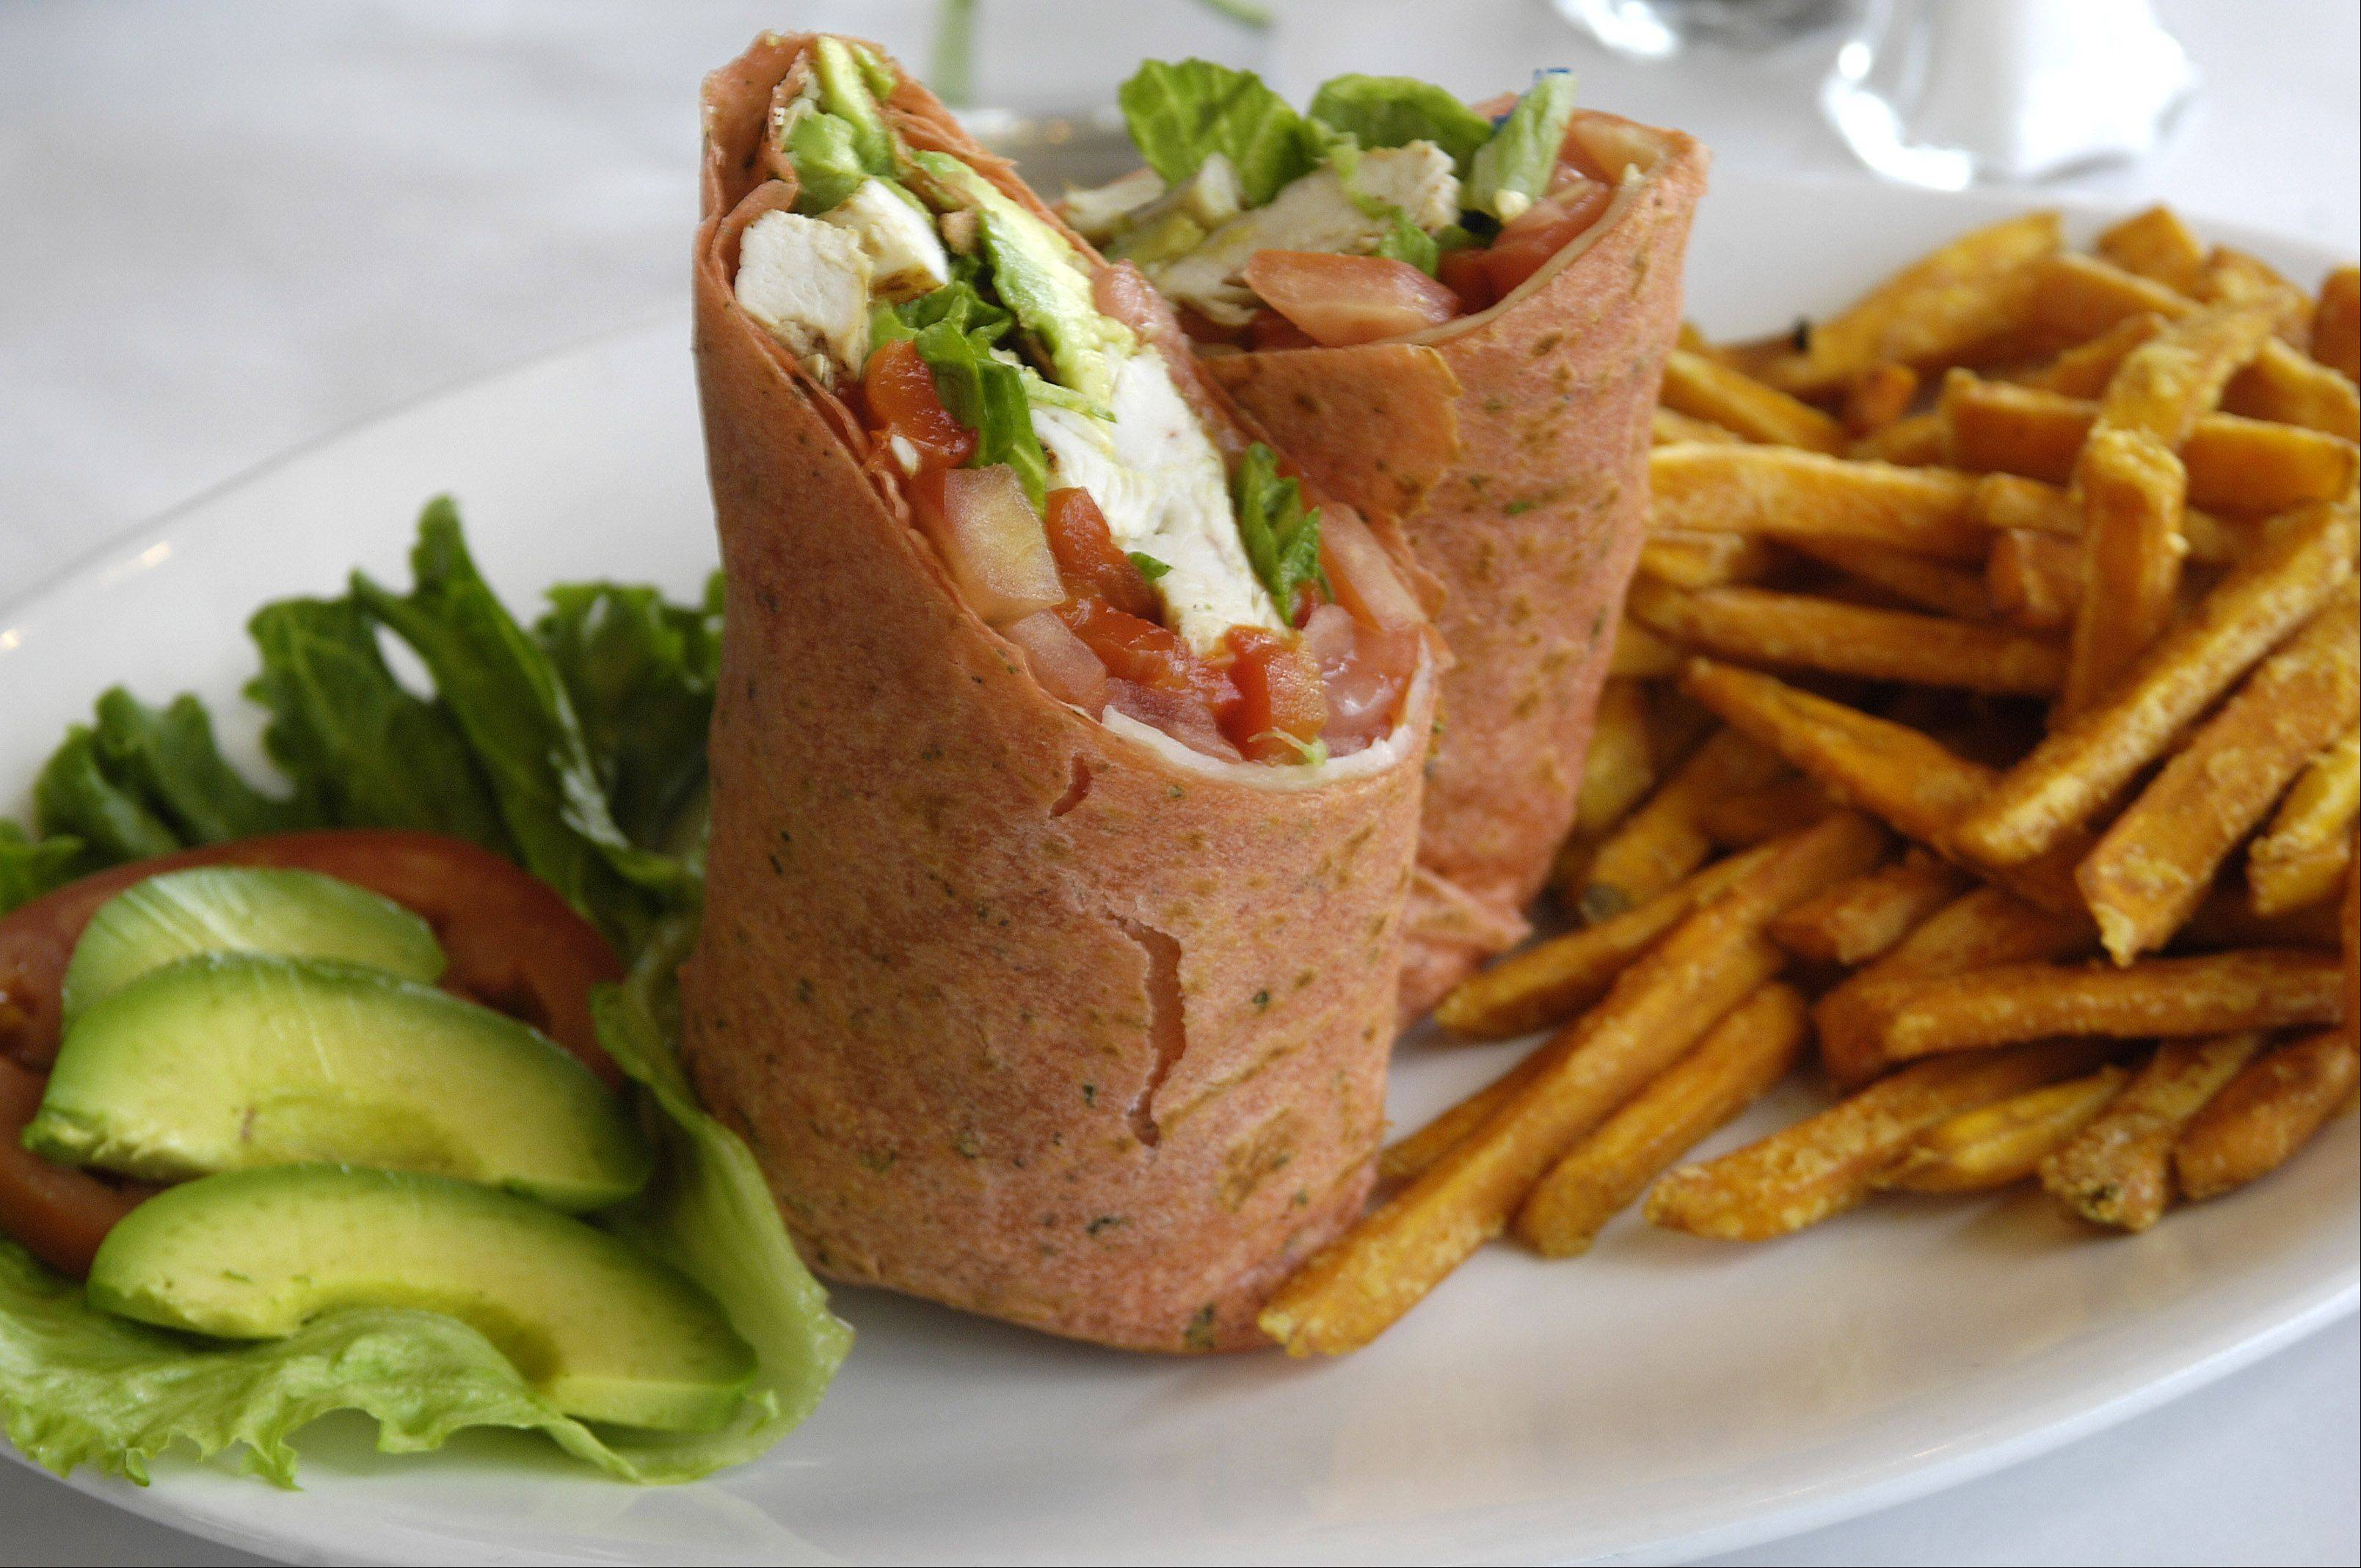 The chicken roll comes with fries at Moonstruck in South Elgin.